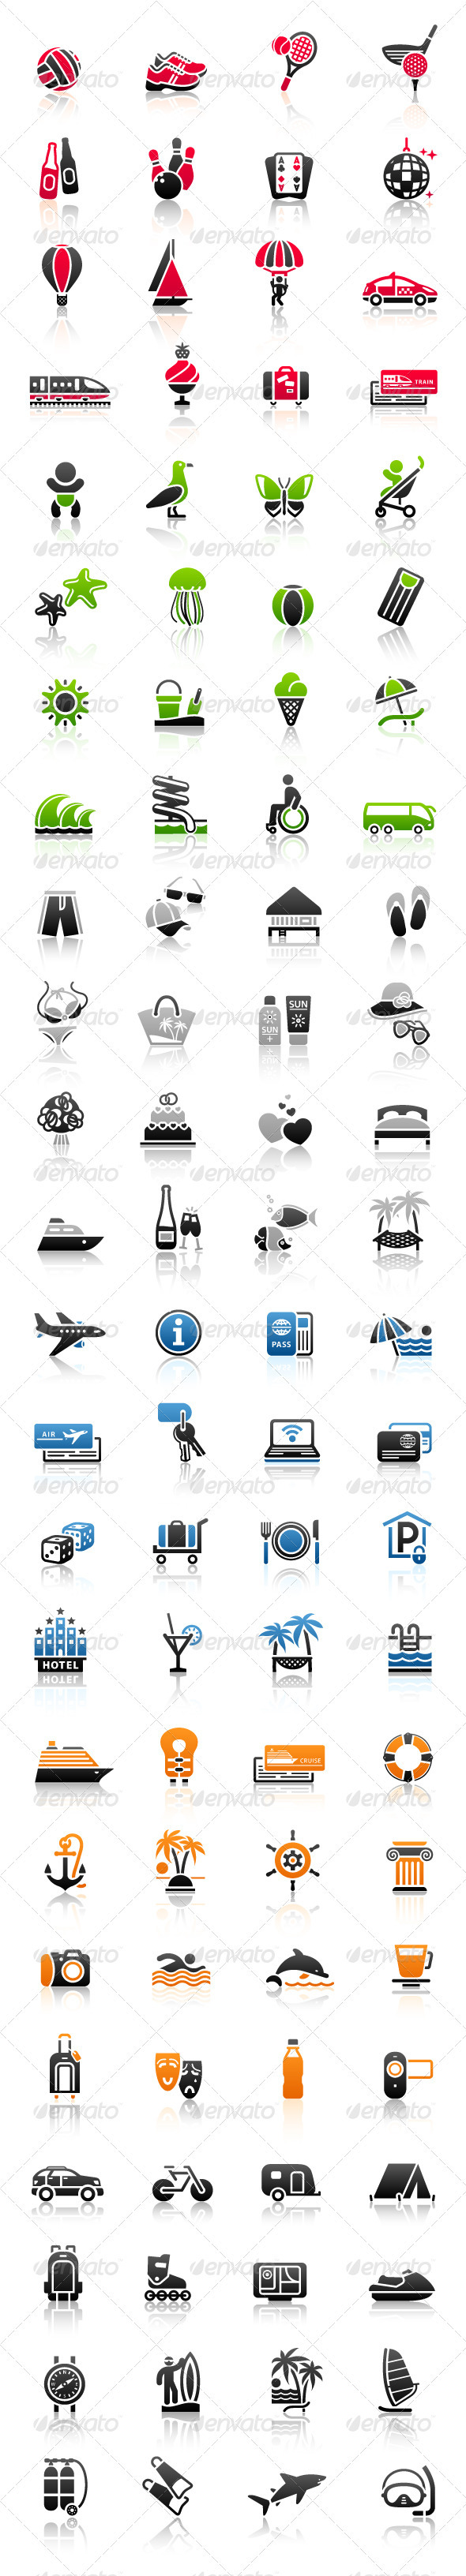 Vacation Signs. Travel Symbols. Recreation Icons.  - Web Icons